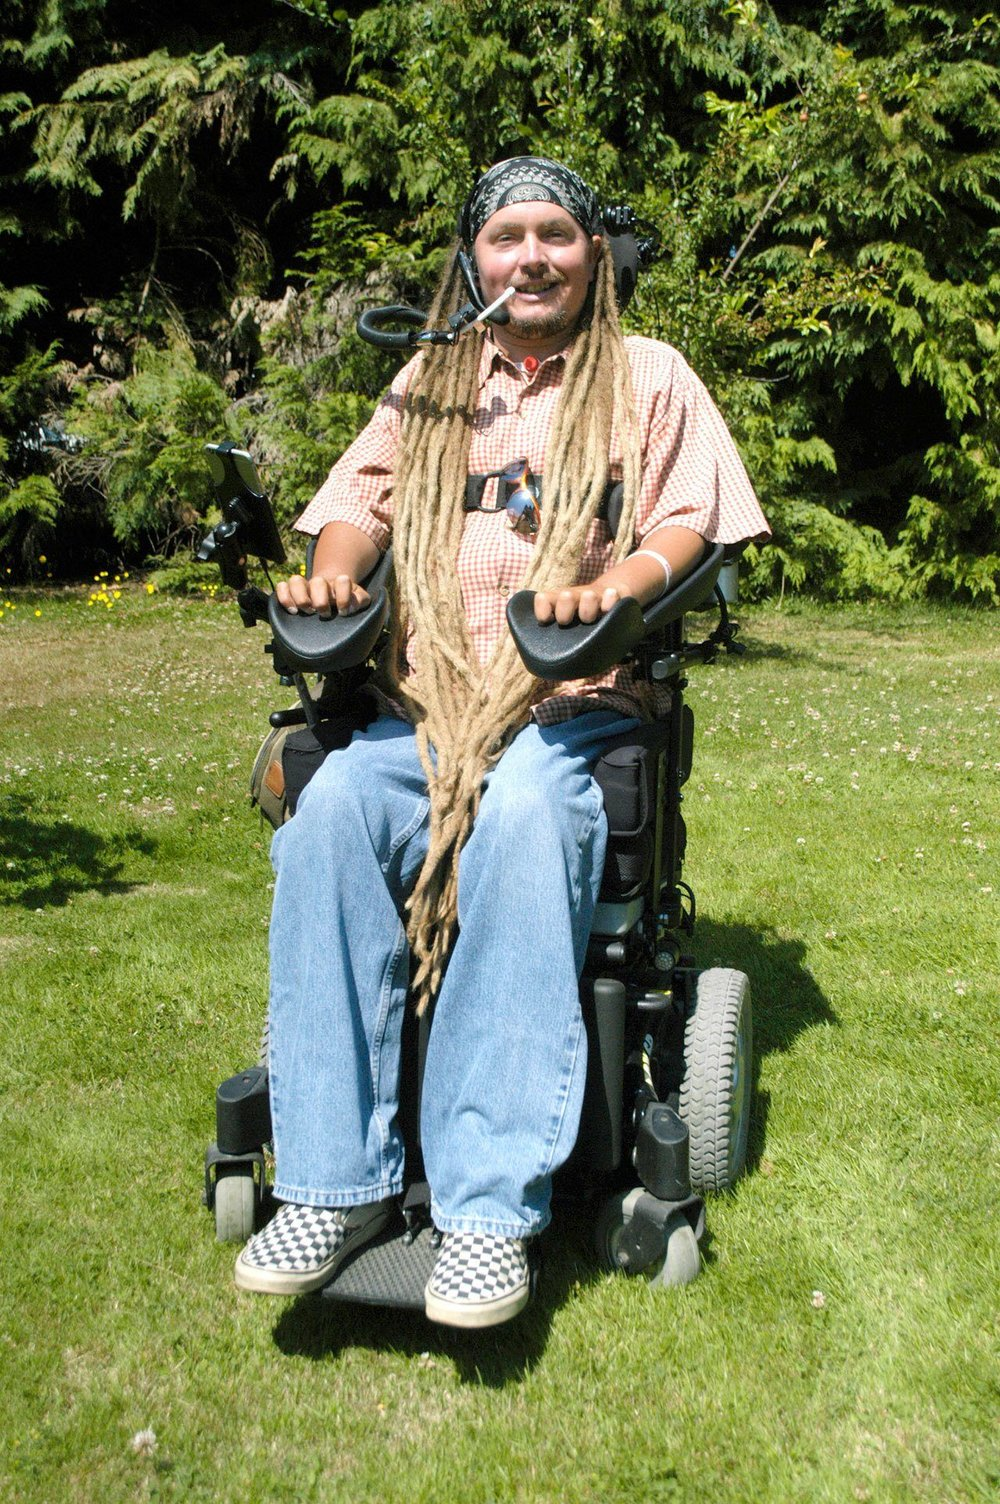 web1_160802_PDN_Wheelchair_Journey_web-640x963@2x.jpg